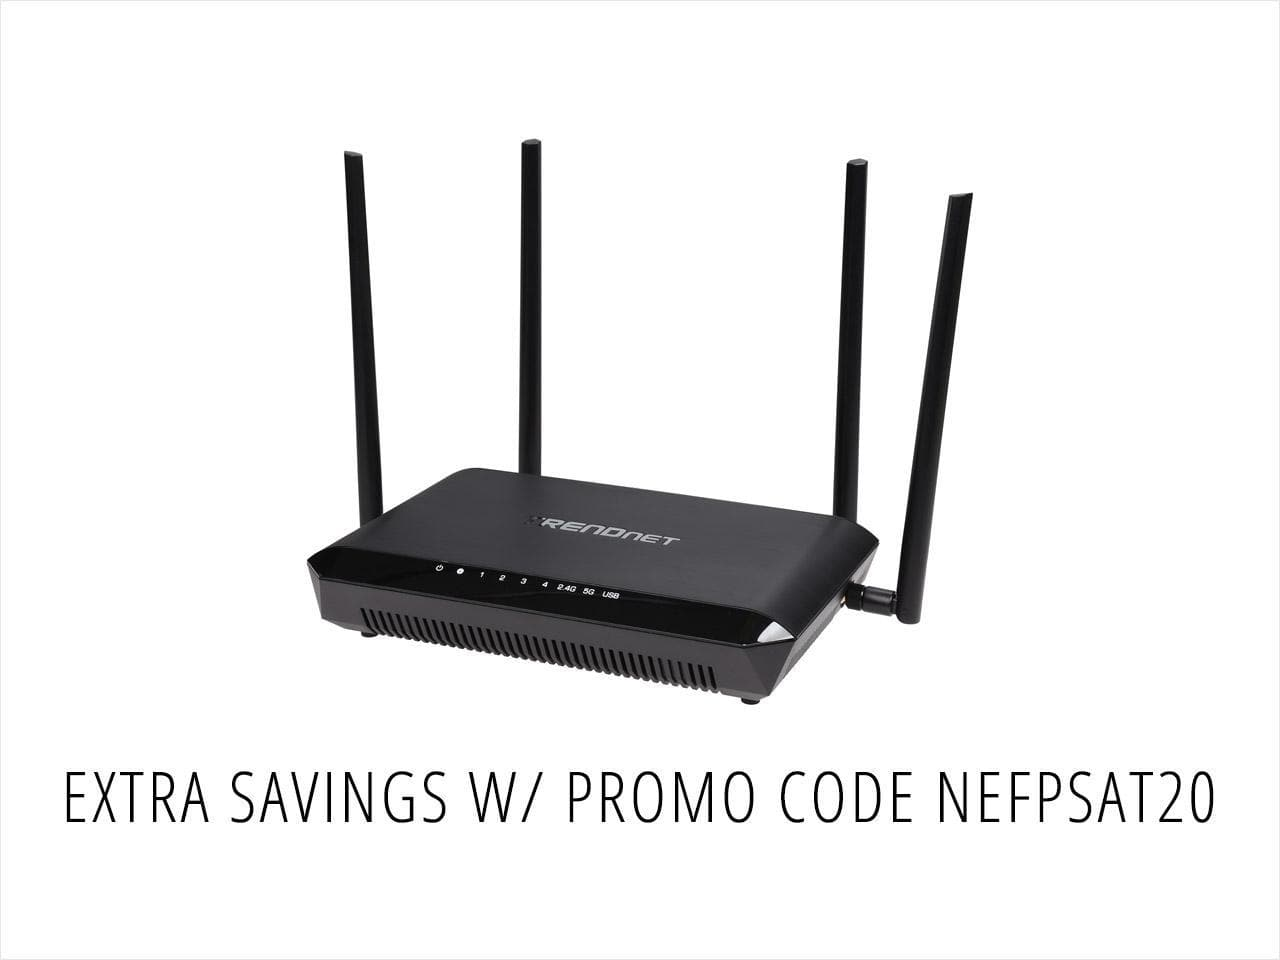 TRENDnet TEW-827DRU AC2600 Dual Band StreamBoost MU-MIMO Router $90AC@NF